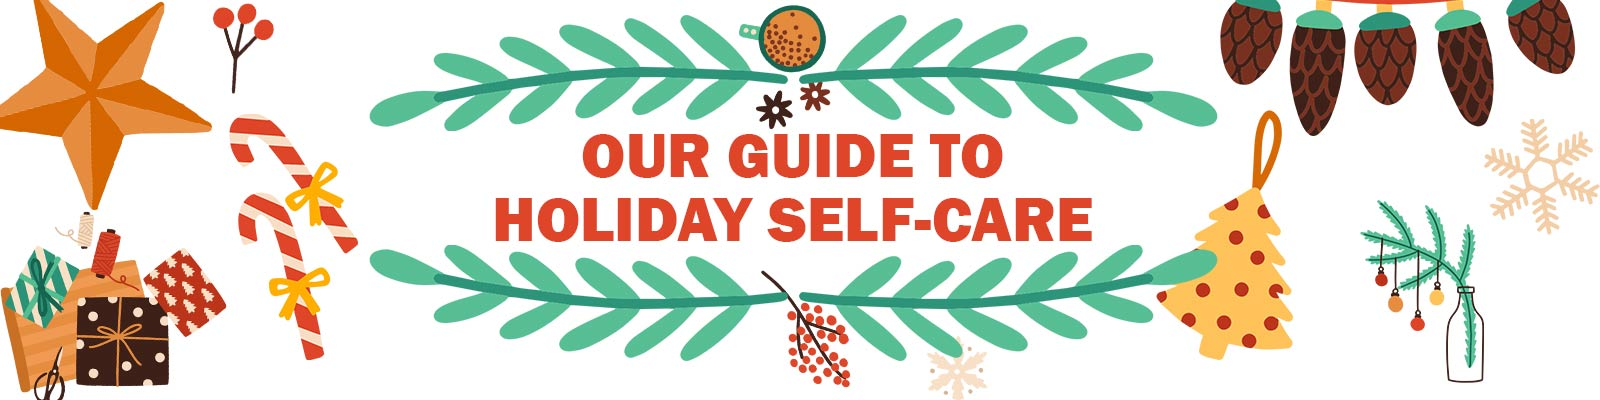 Self-care to combat holiday stress